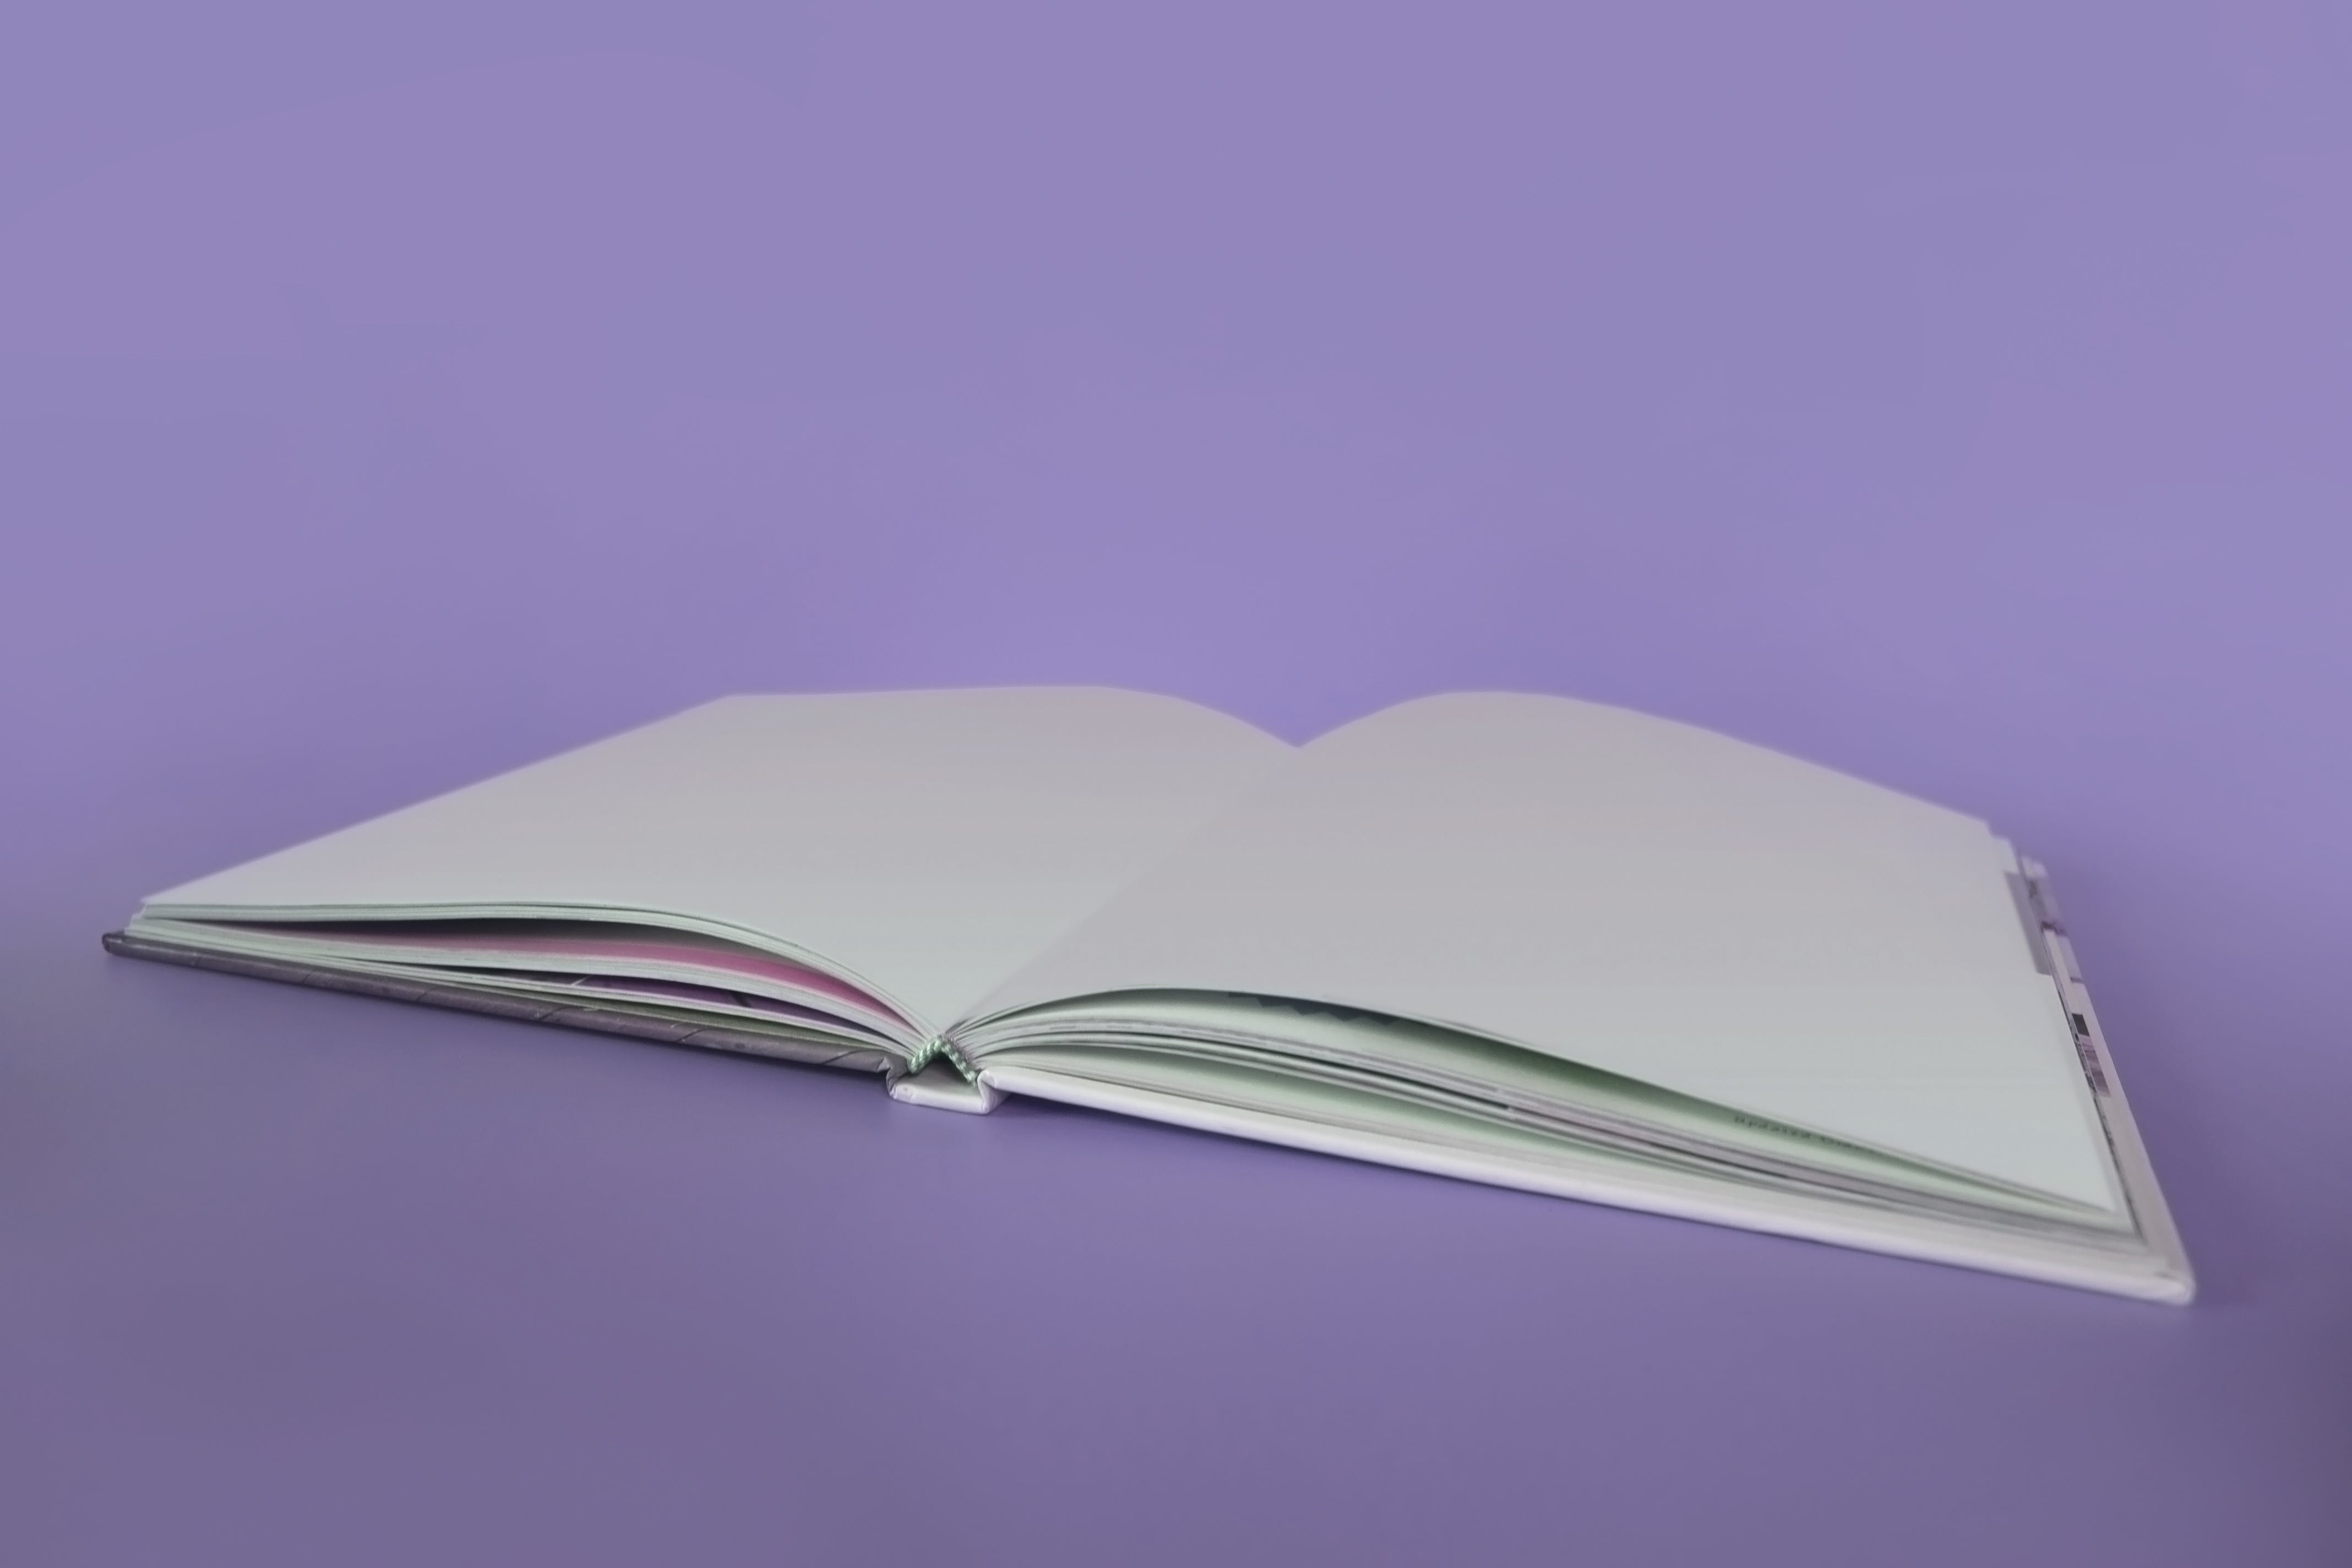 Opened Book on Purple Surface